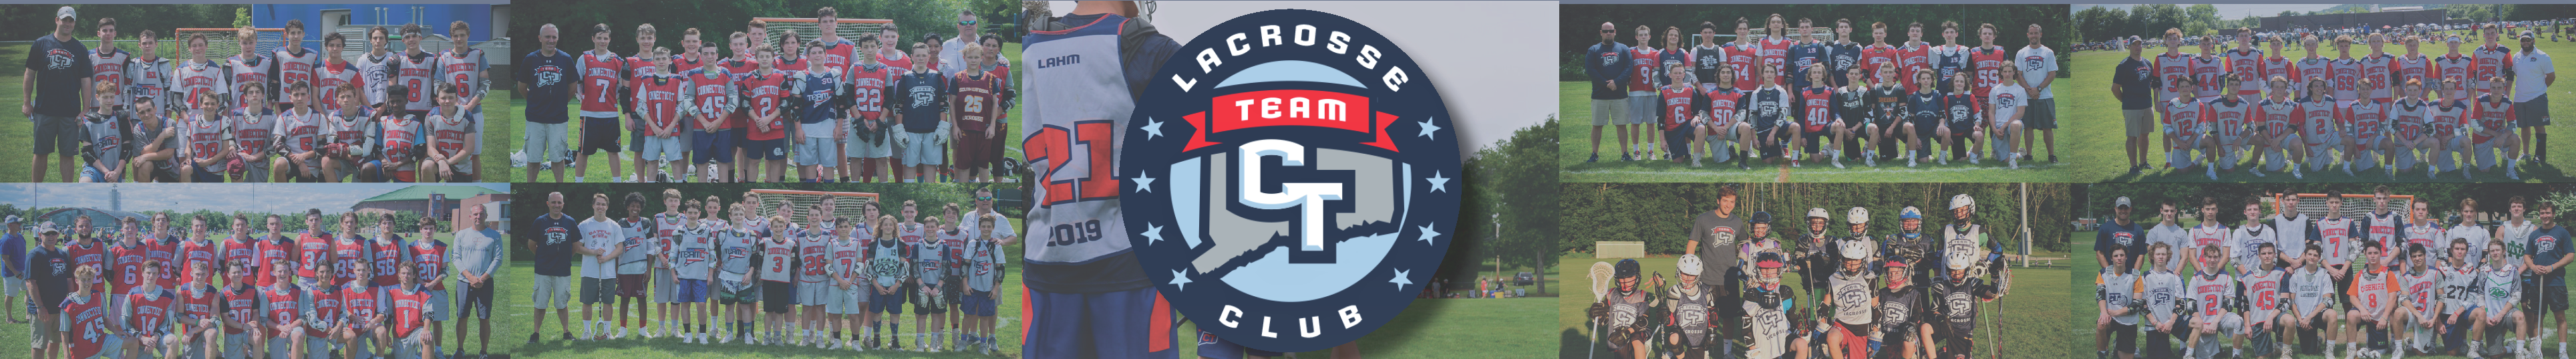 TEAM CONNECTICUT LACROSSE CLUB, Lacrosse, Goal, Field